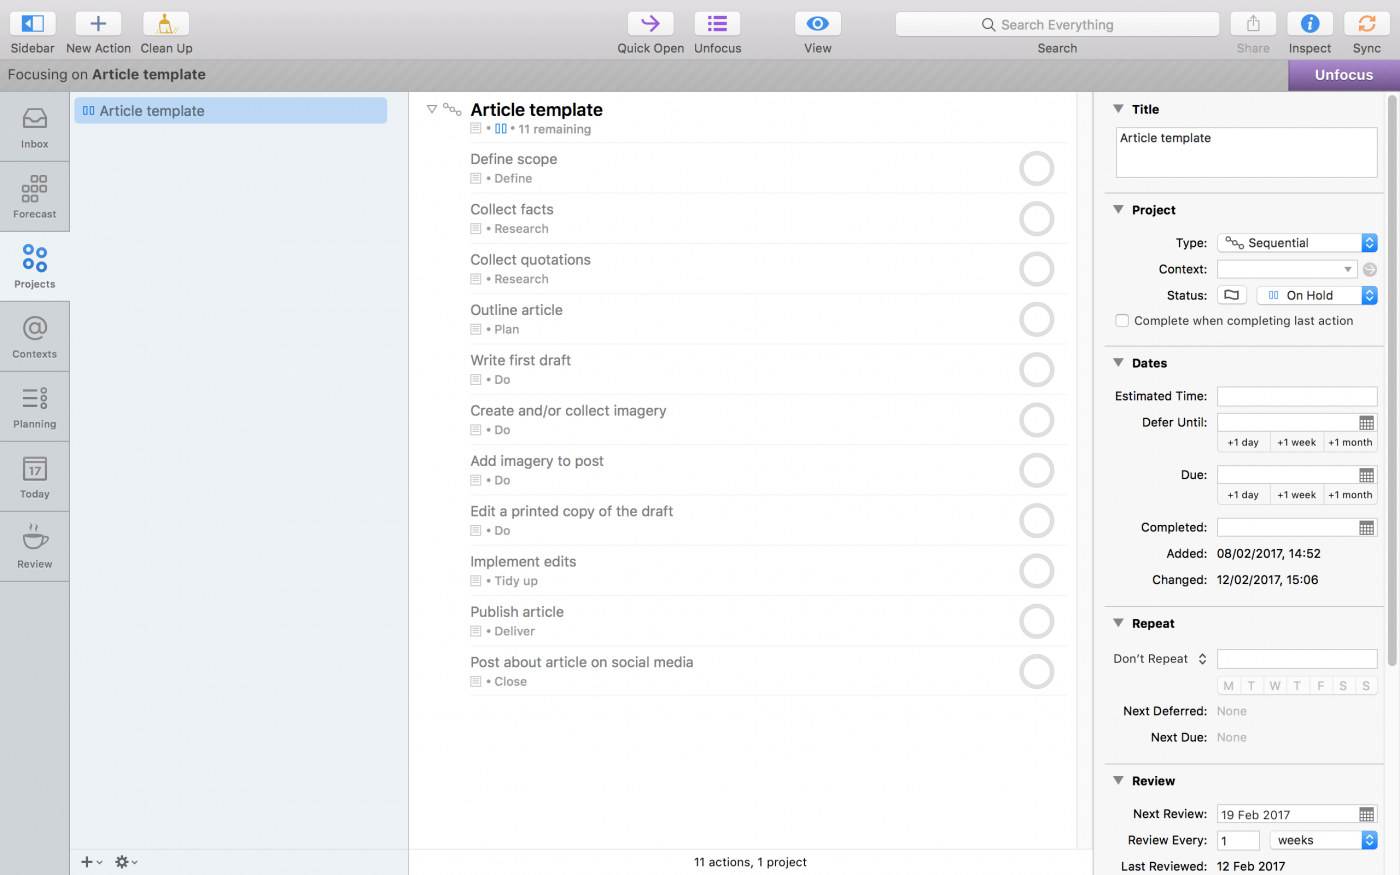 A screenshot of my article template Project.